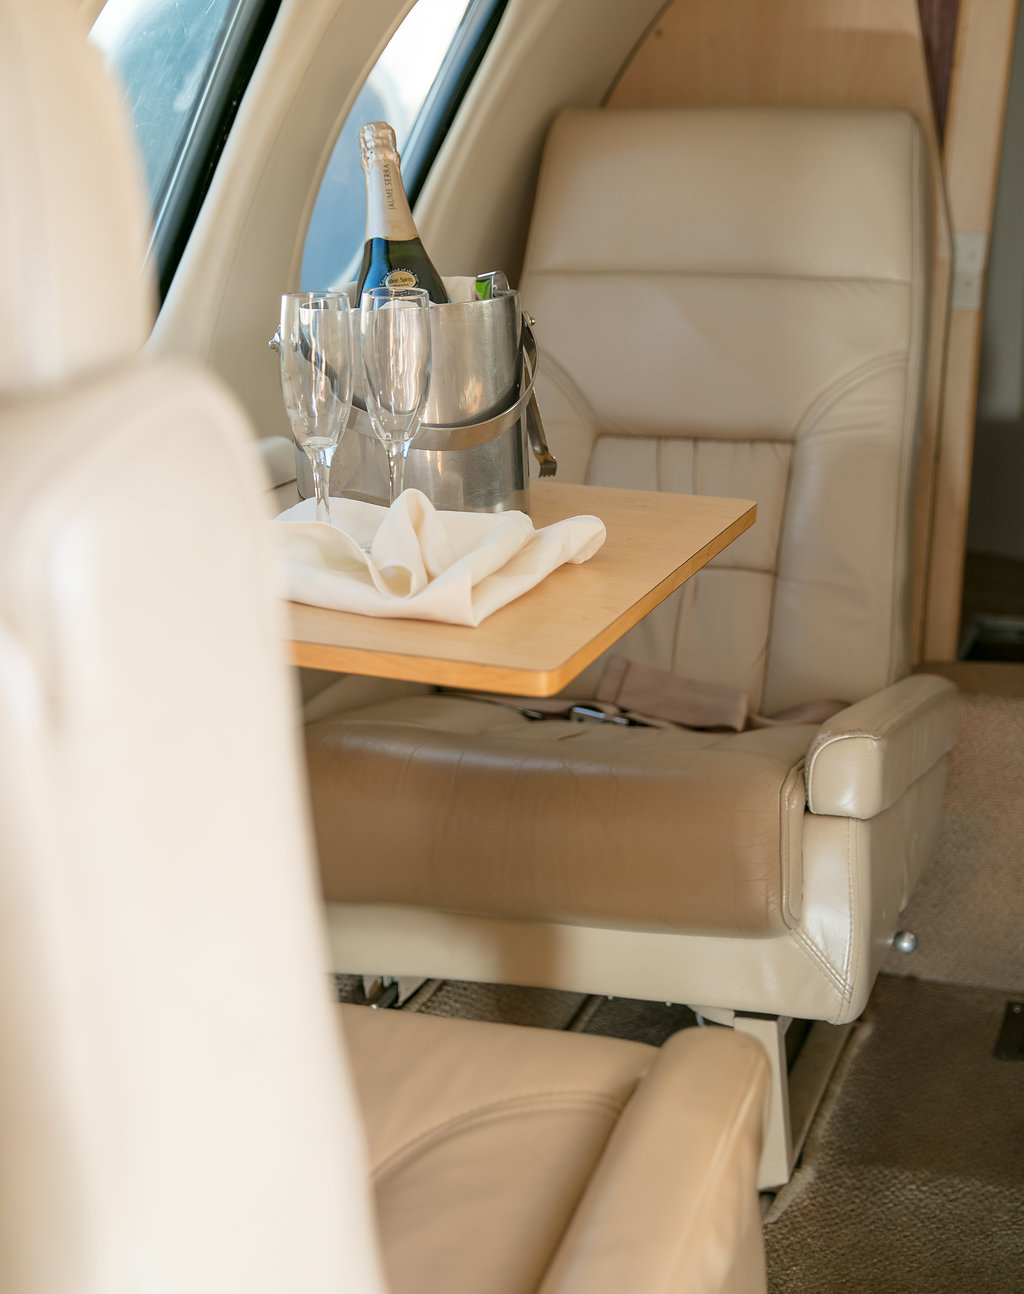 seats and table inside private jet with champagne bucket on table